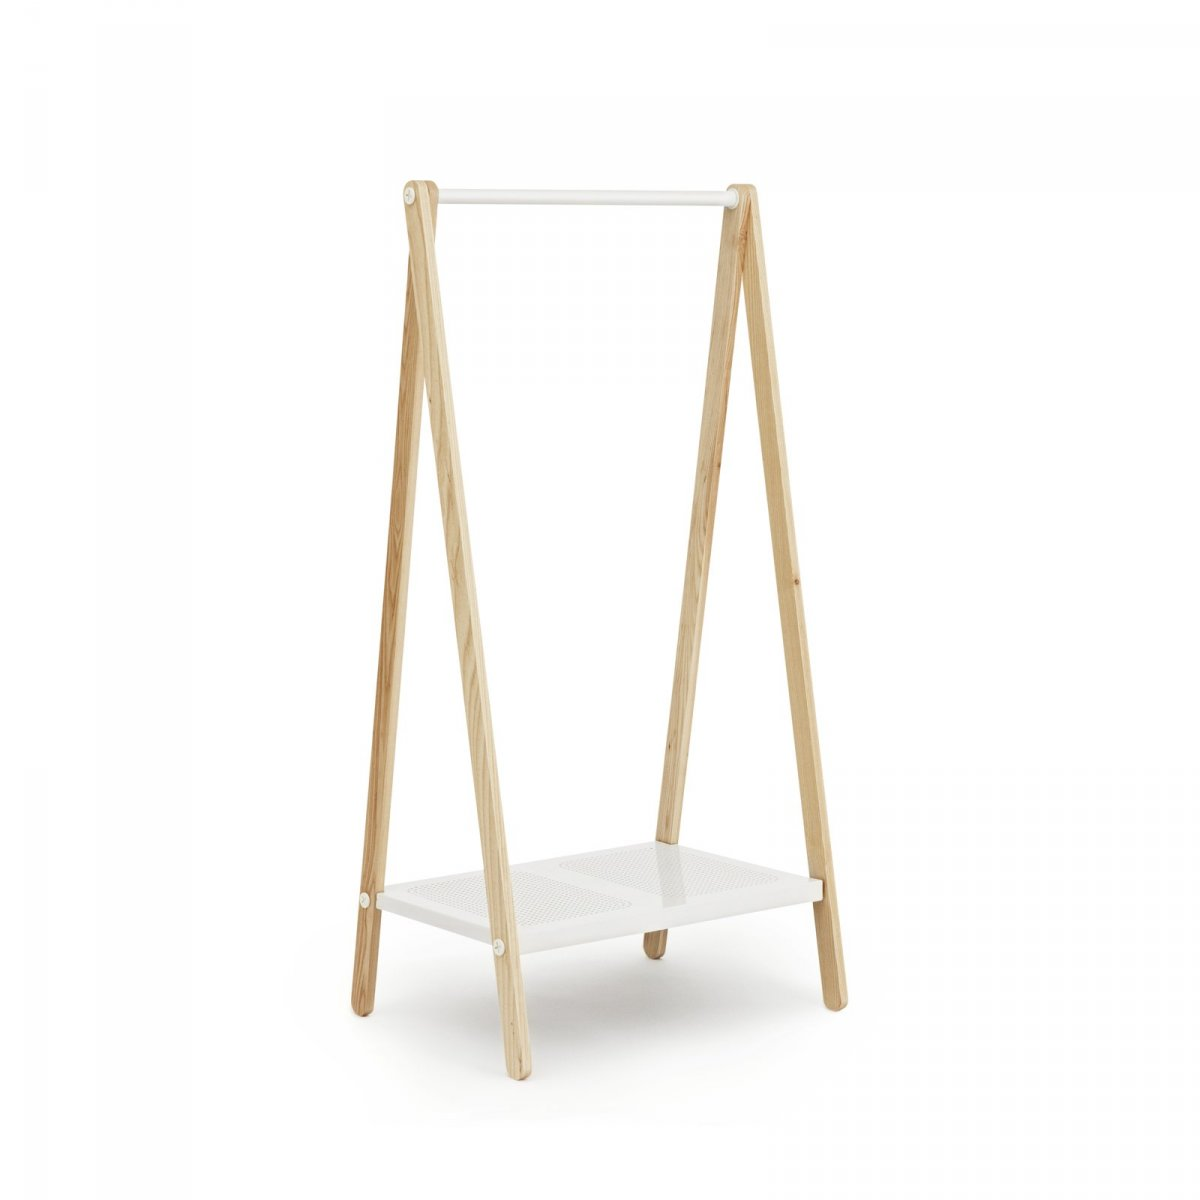 Toj Clothes Rack Small, white.